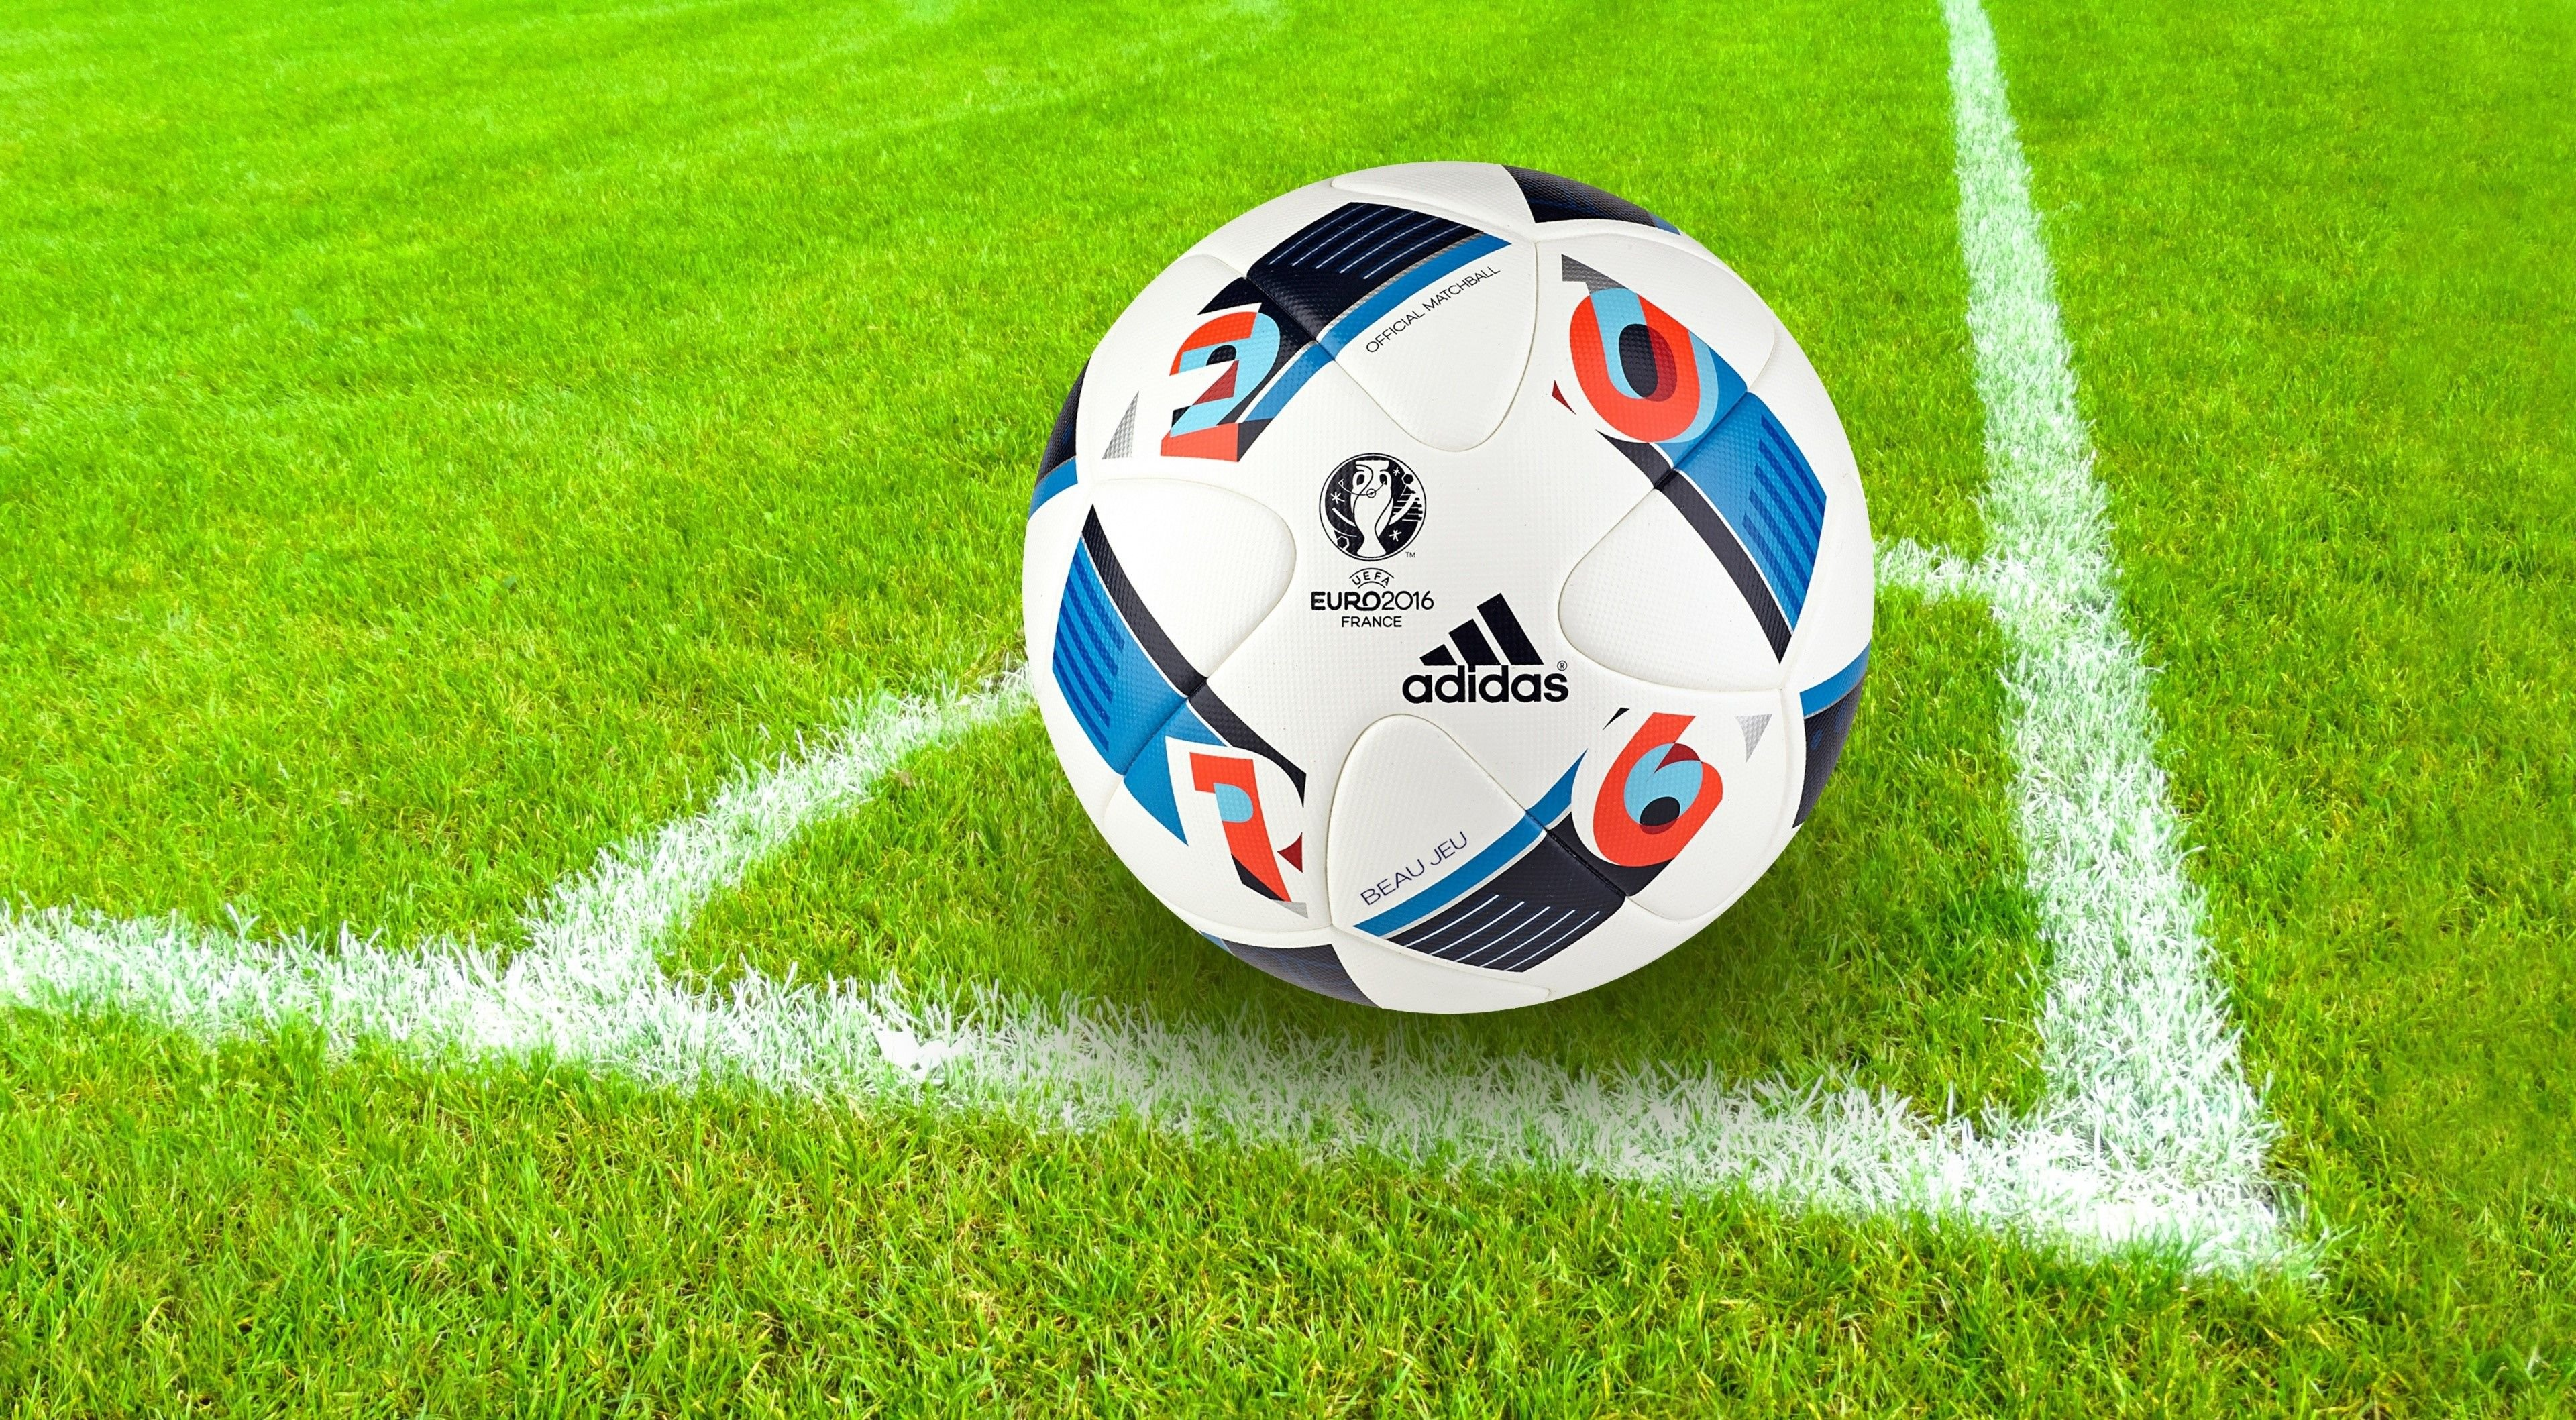 4k Ultra Hd Soccer Wallpapers Top Free 4k Ultra Hd Soccer